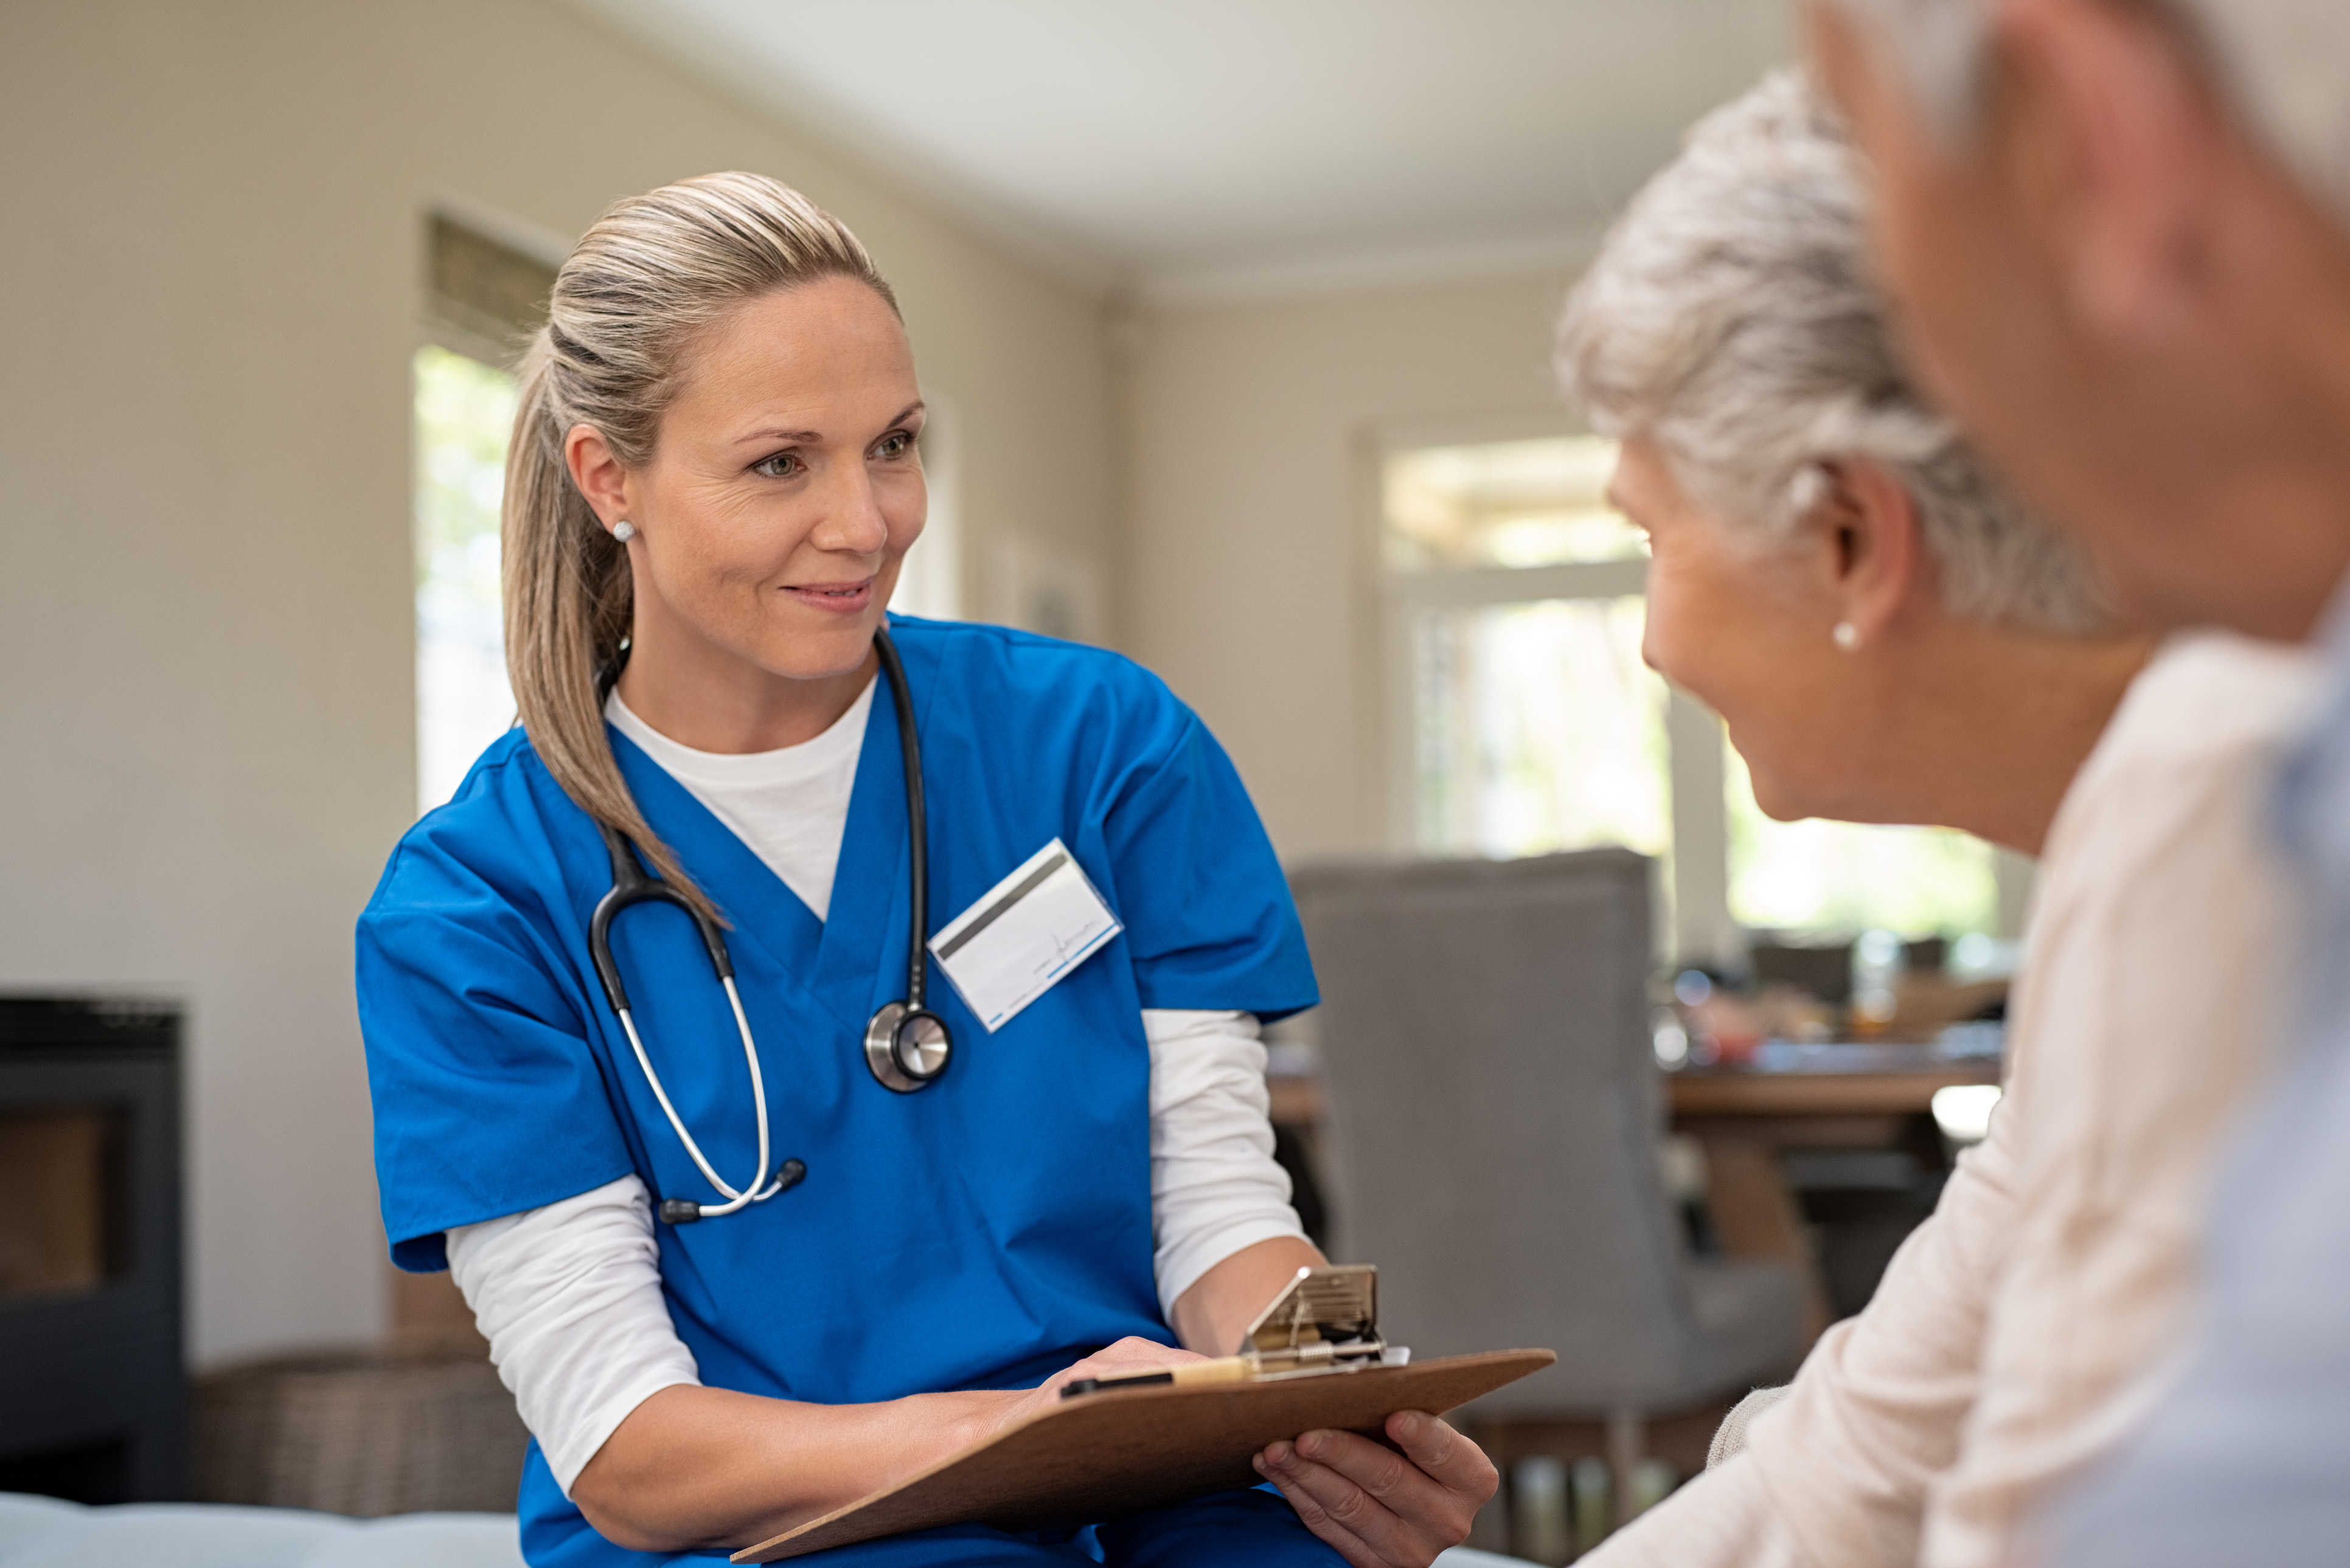 How Long Does It Take to Become a Registered Nurse?